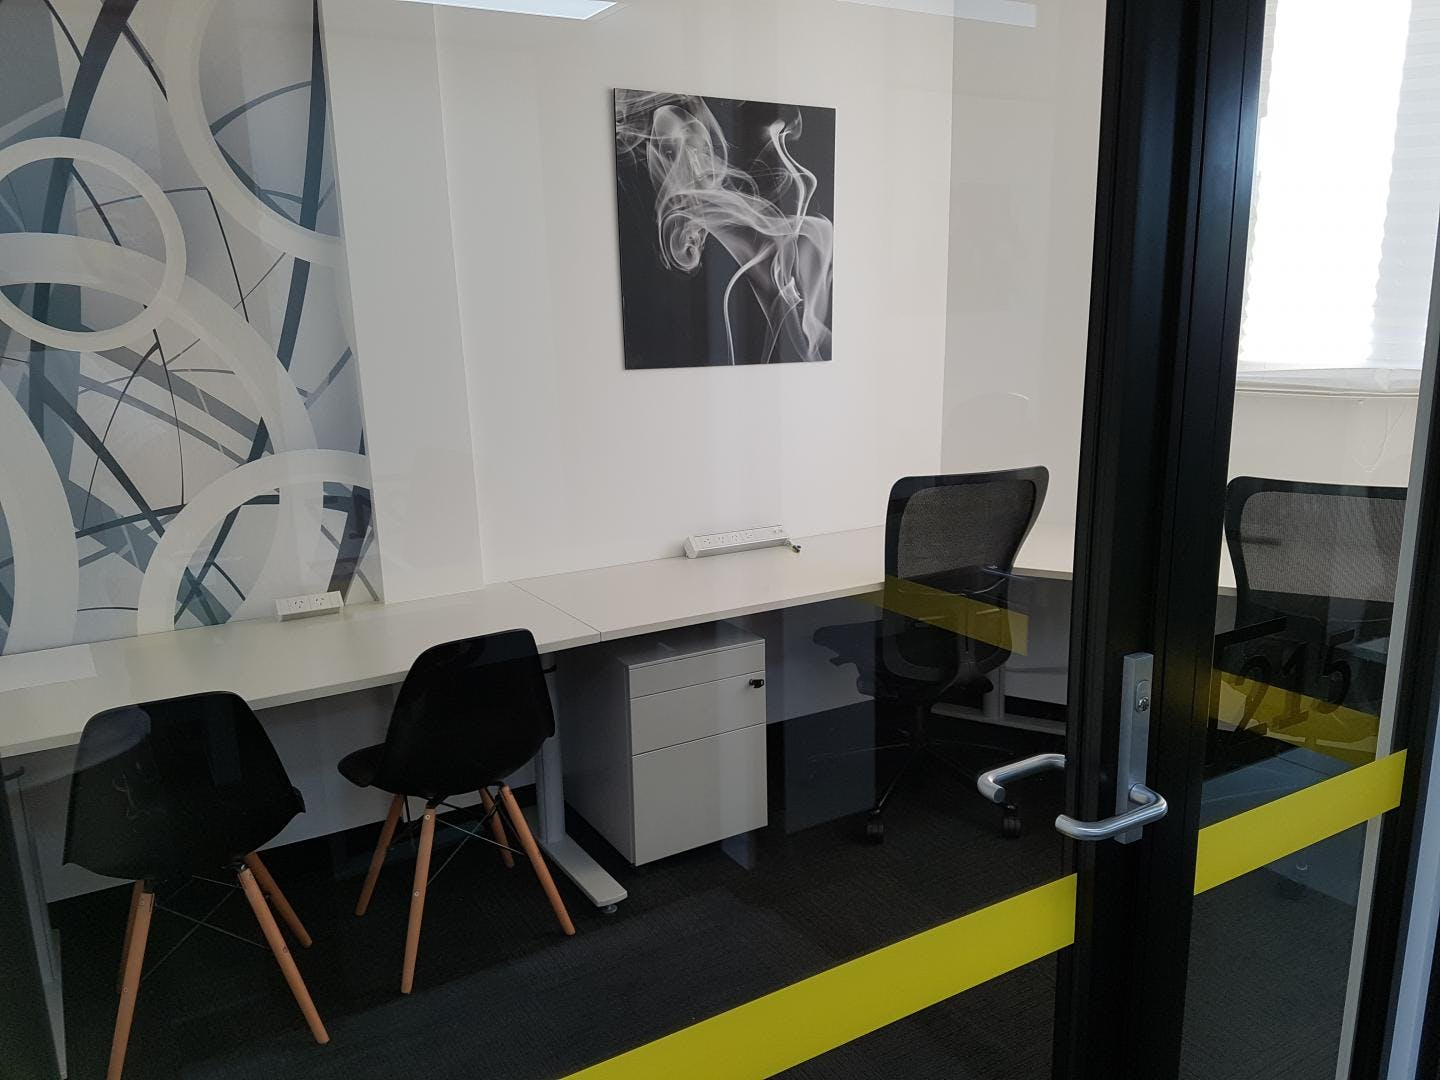 Suite 215, serviced office at Anytime Offices, image 1